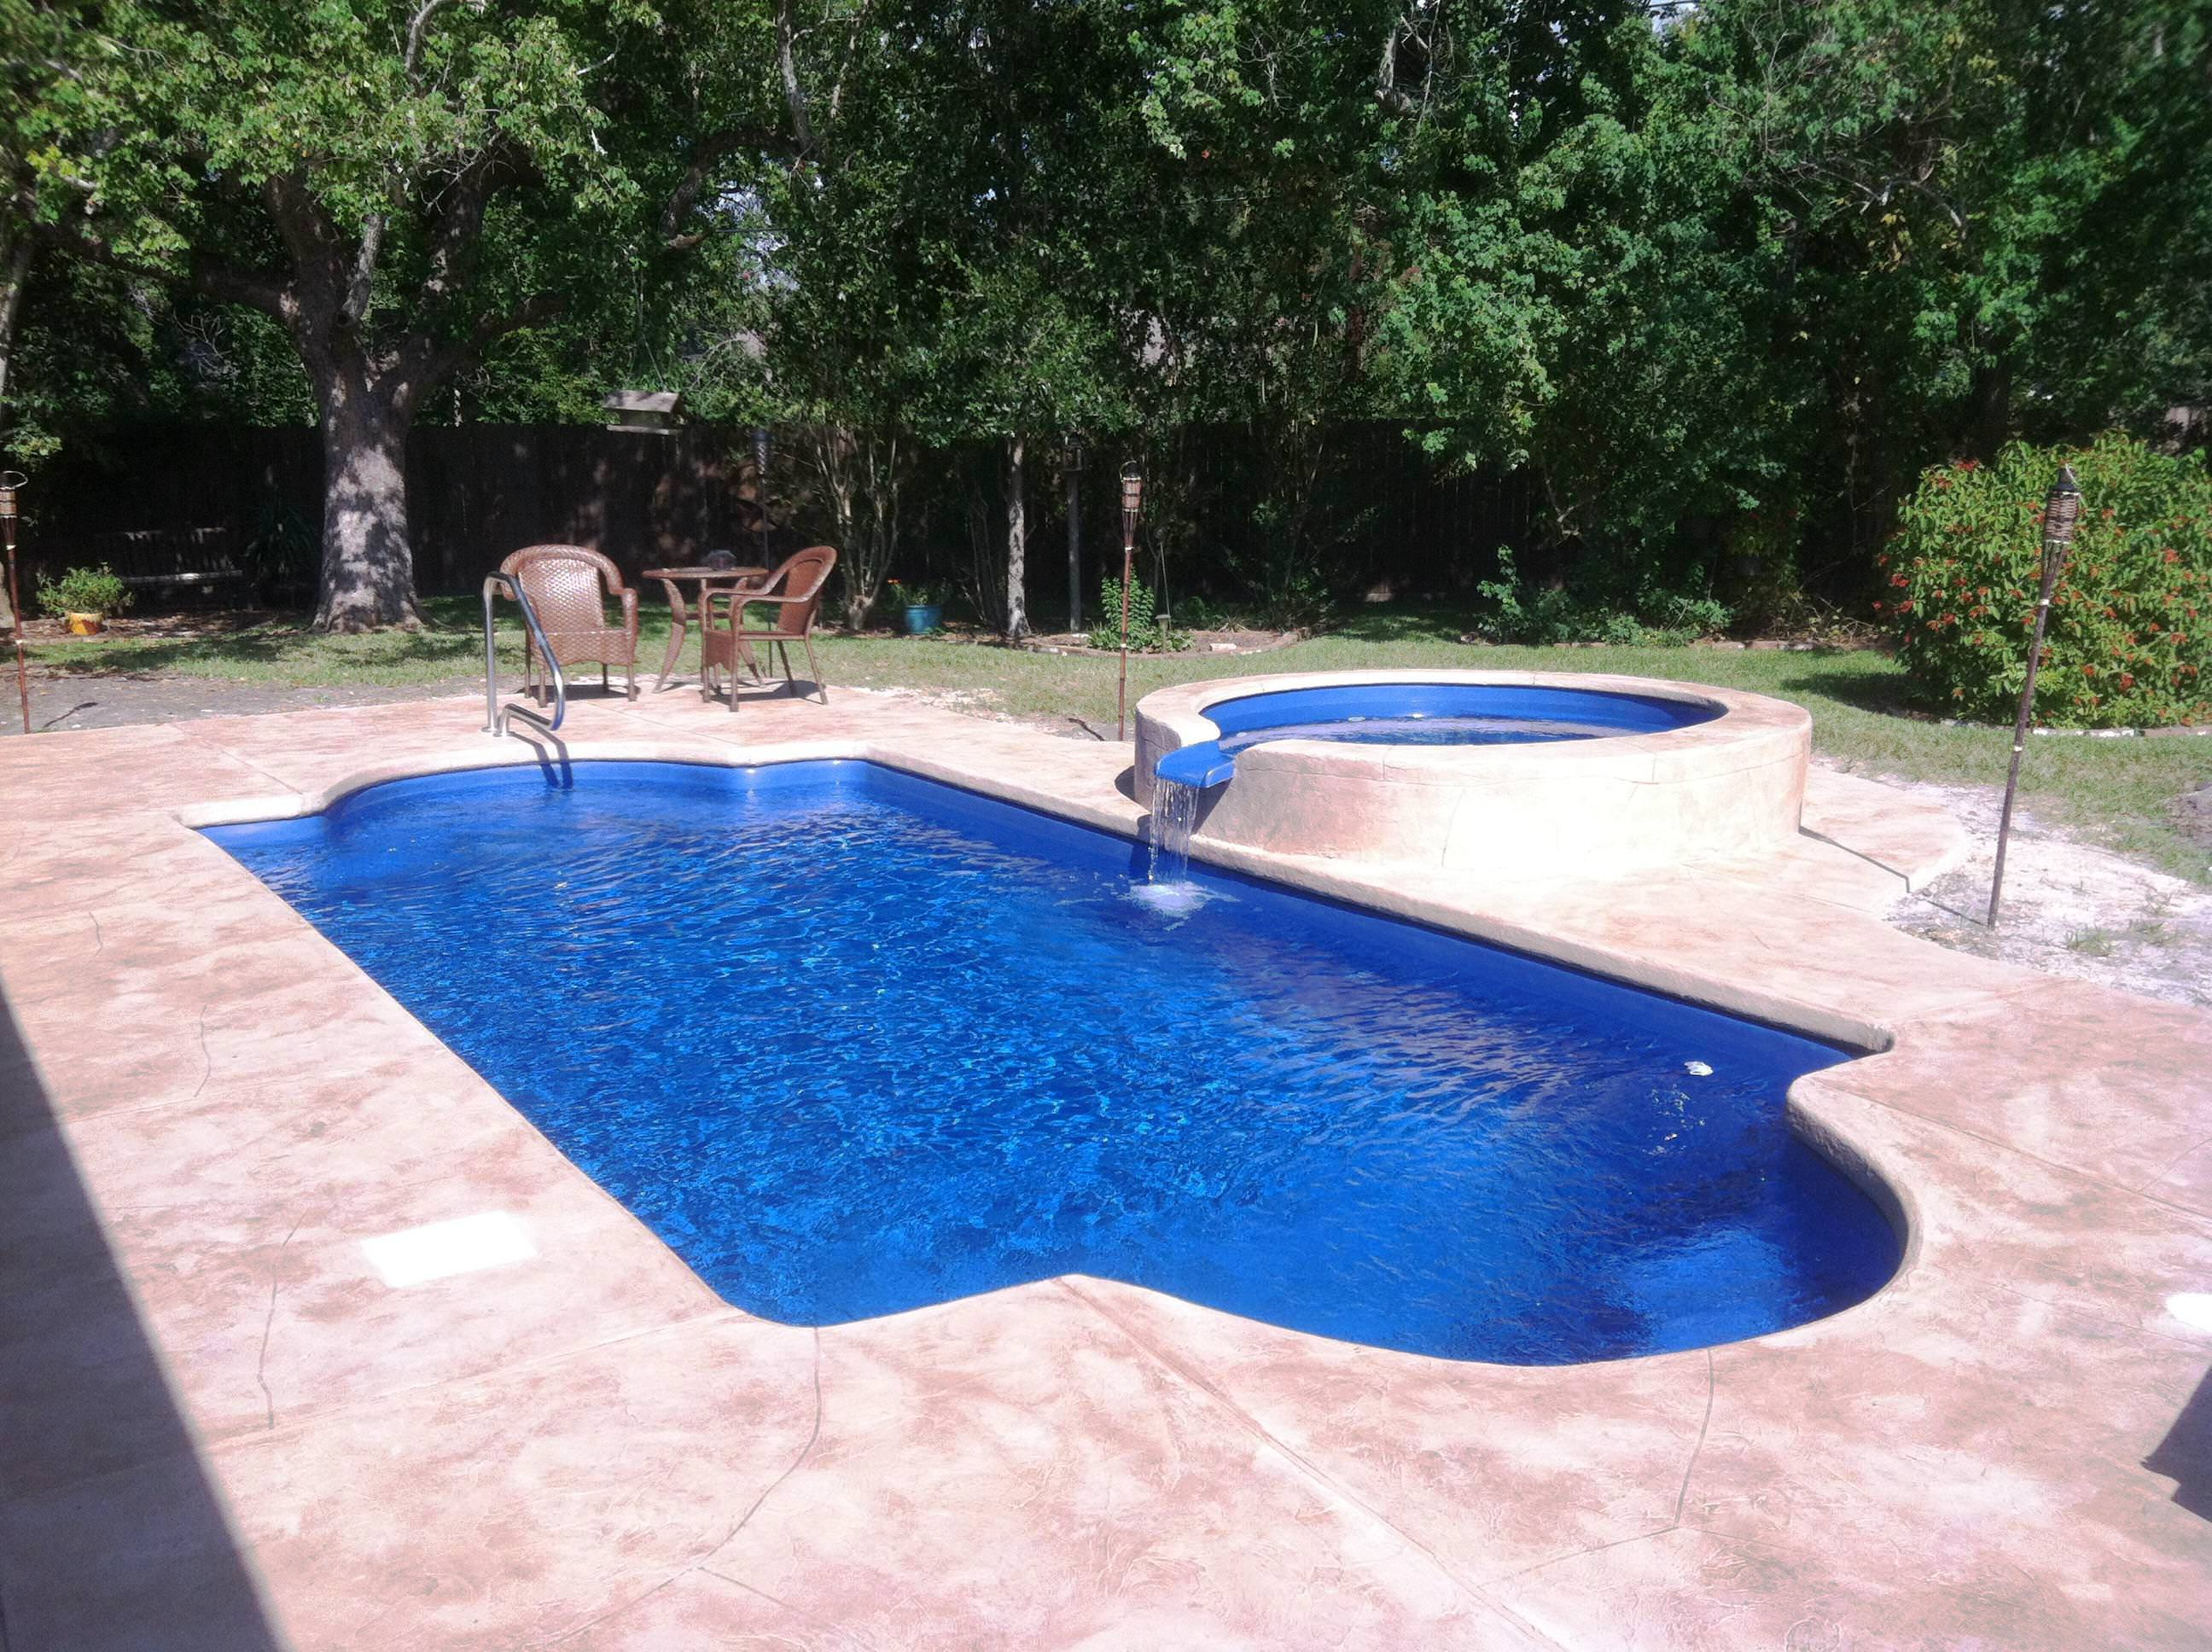 Jacuzzi Pool Ideas 33 Jacuzzi Pools For Your Home